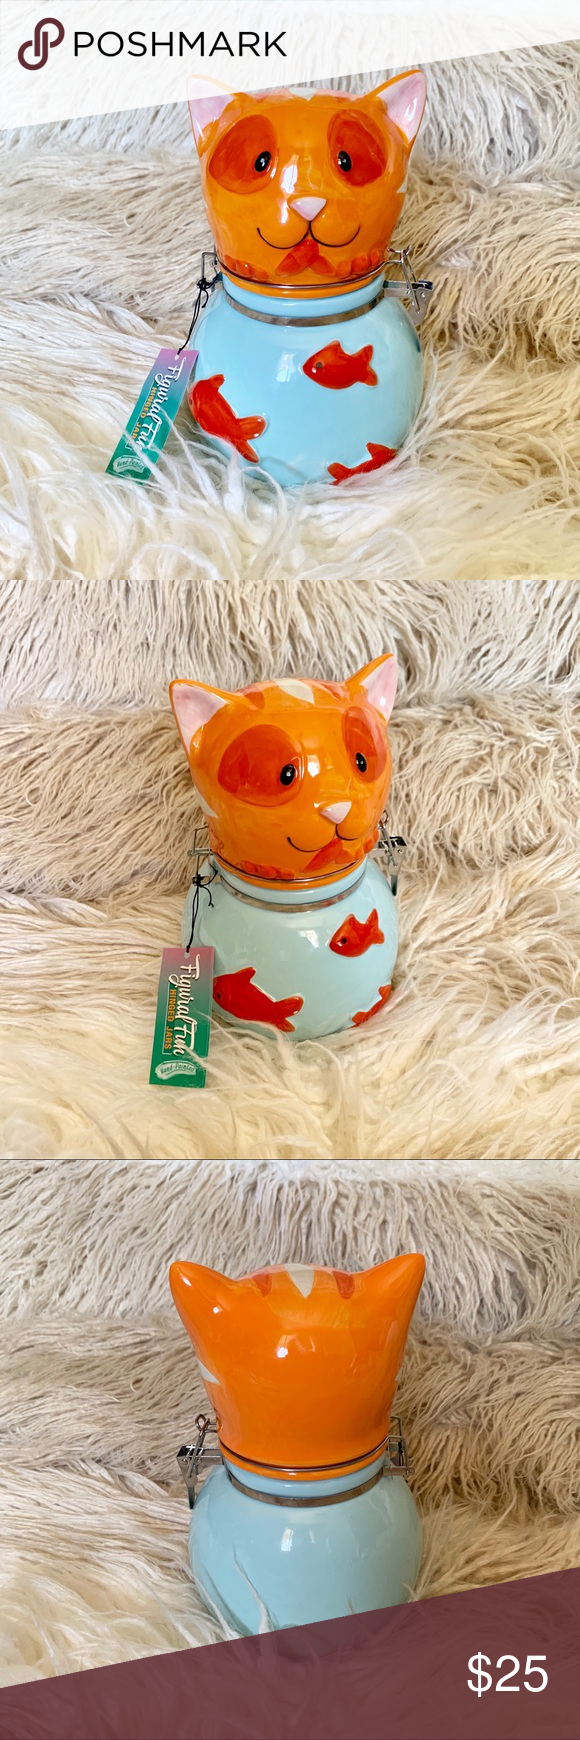 Cat Fish Bowl Hinged Jar Cat Fish Bowl Decorative it